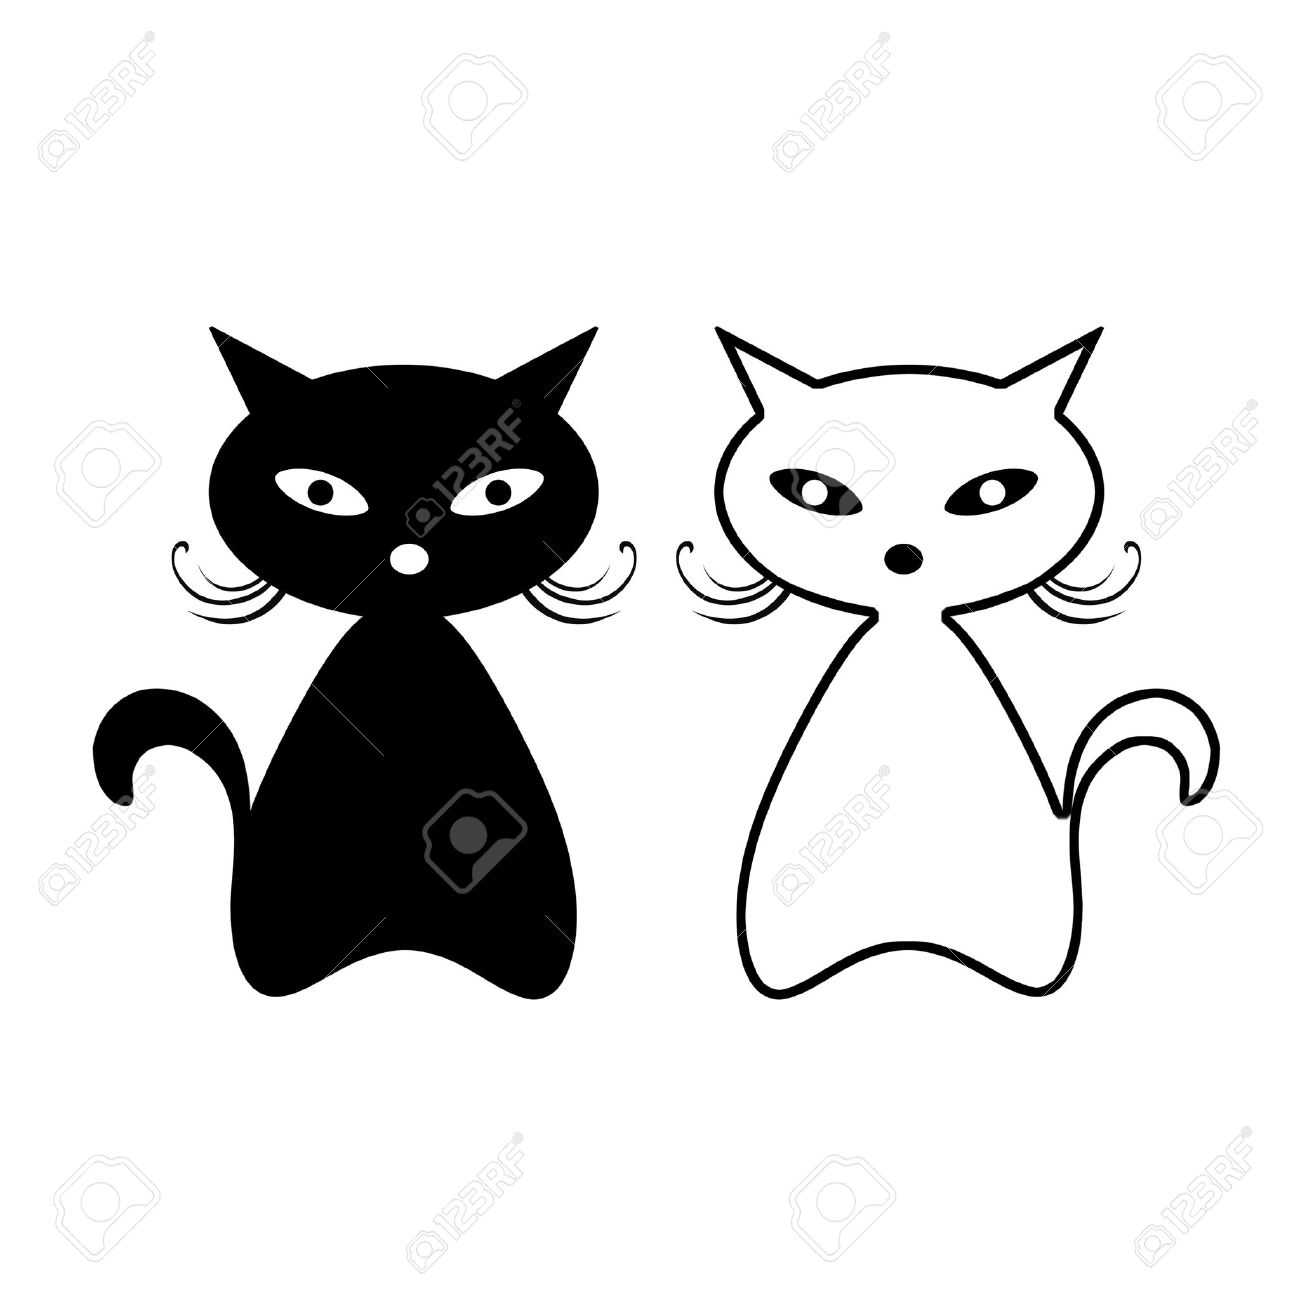 Black cat silhouette isolated on white background Stock Vector - 15439152